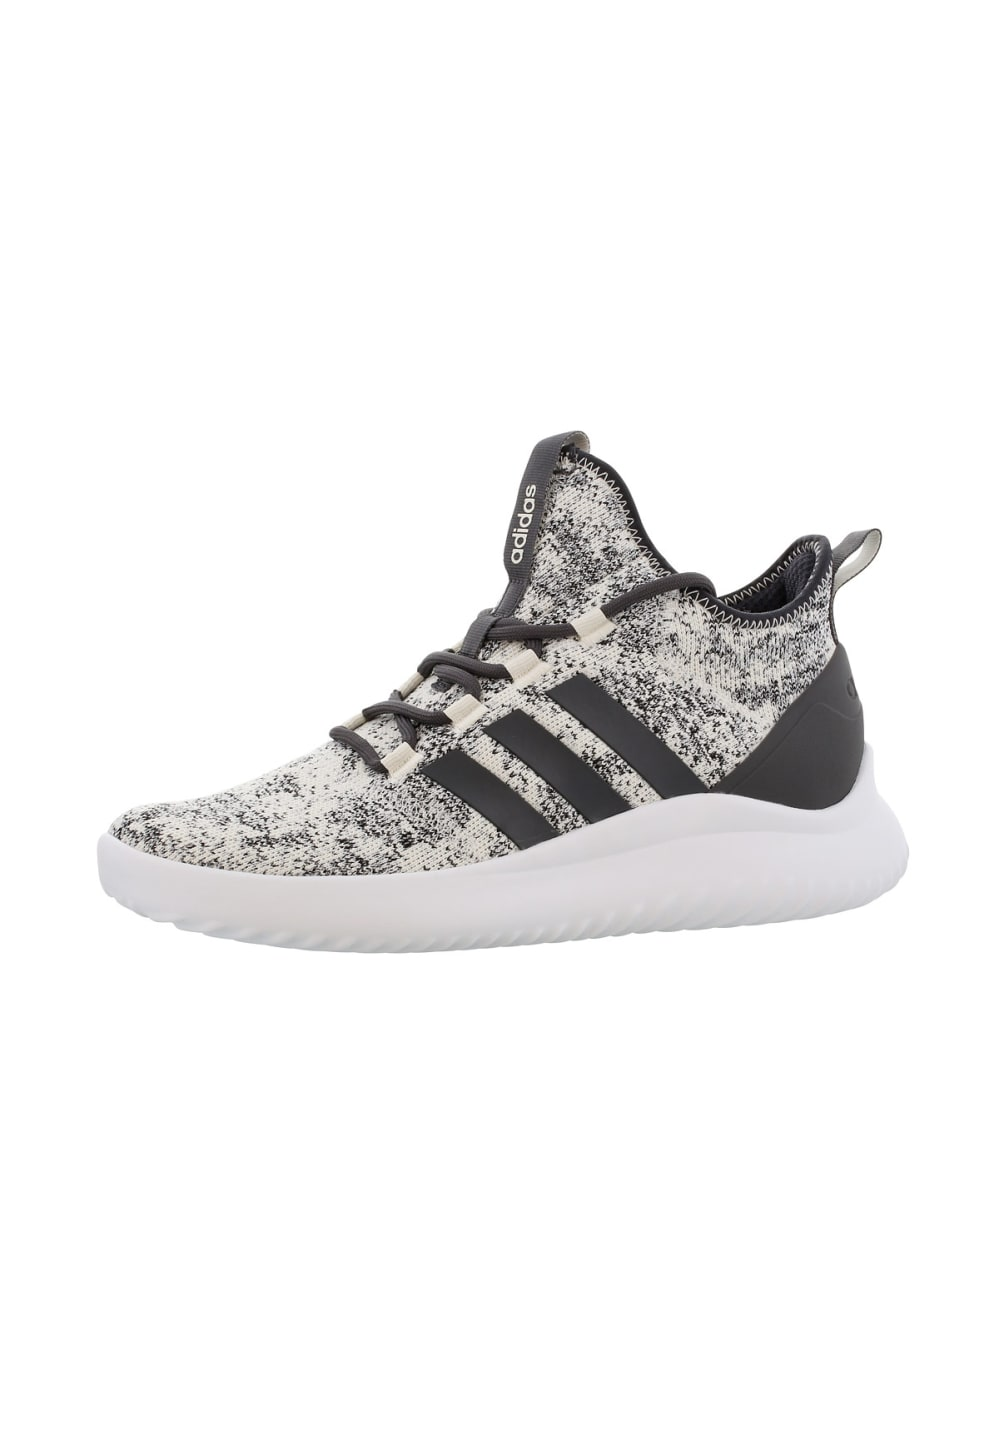 035f95123be adidas neo Cf Ultimate Bball - Sneaker for Men - Multicolor